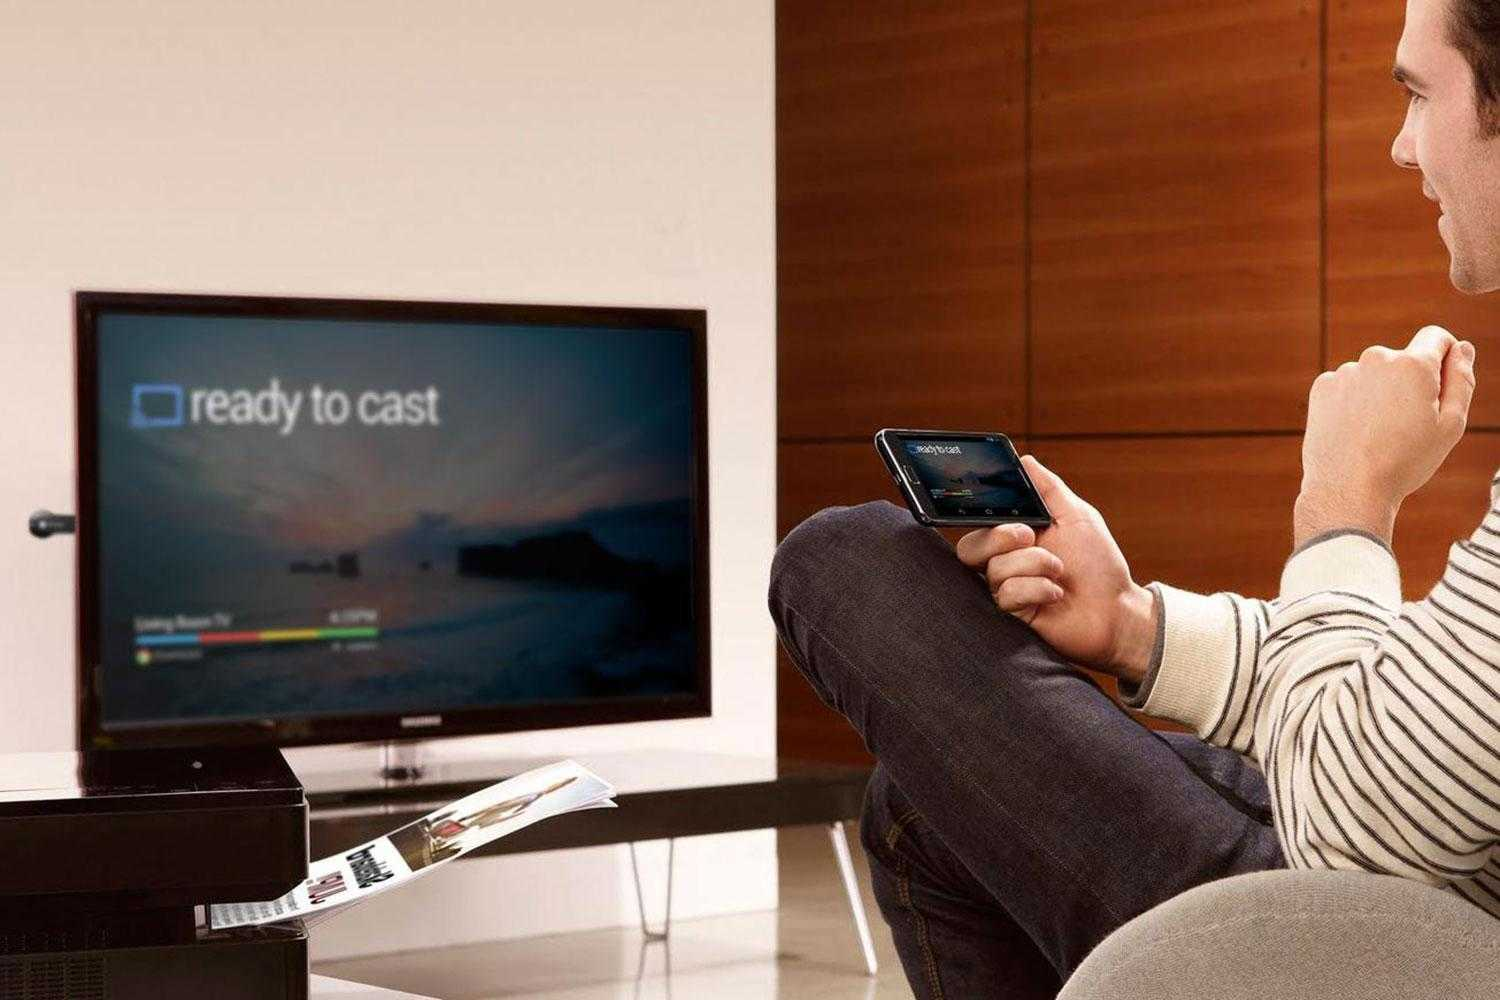 How to connect smartphone to TV